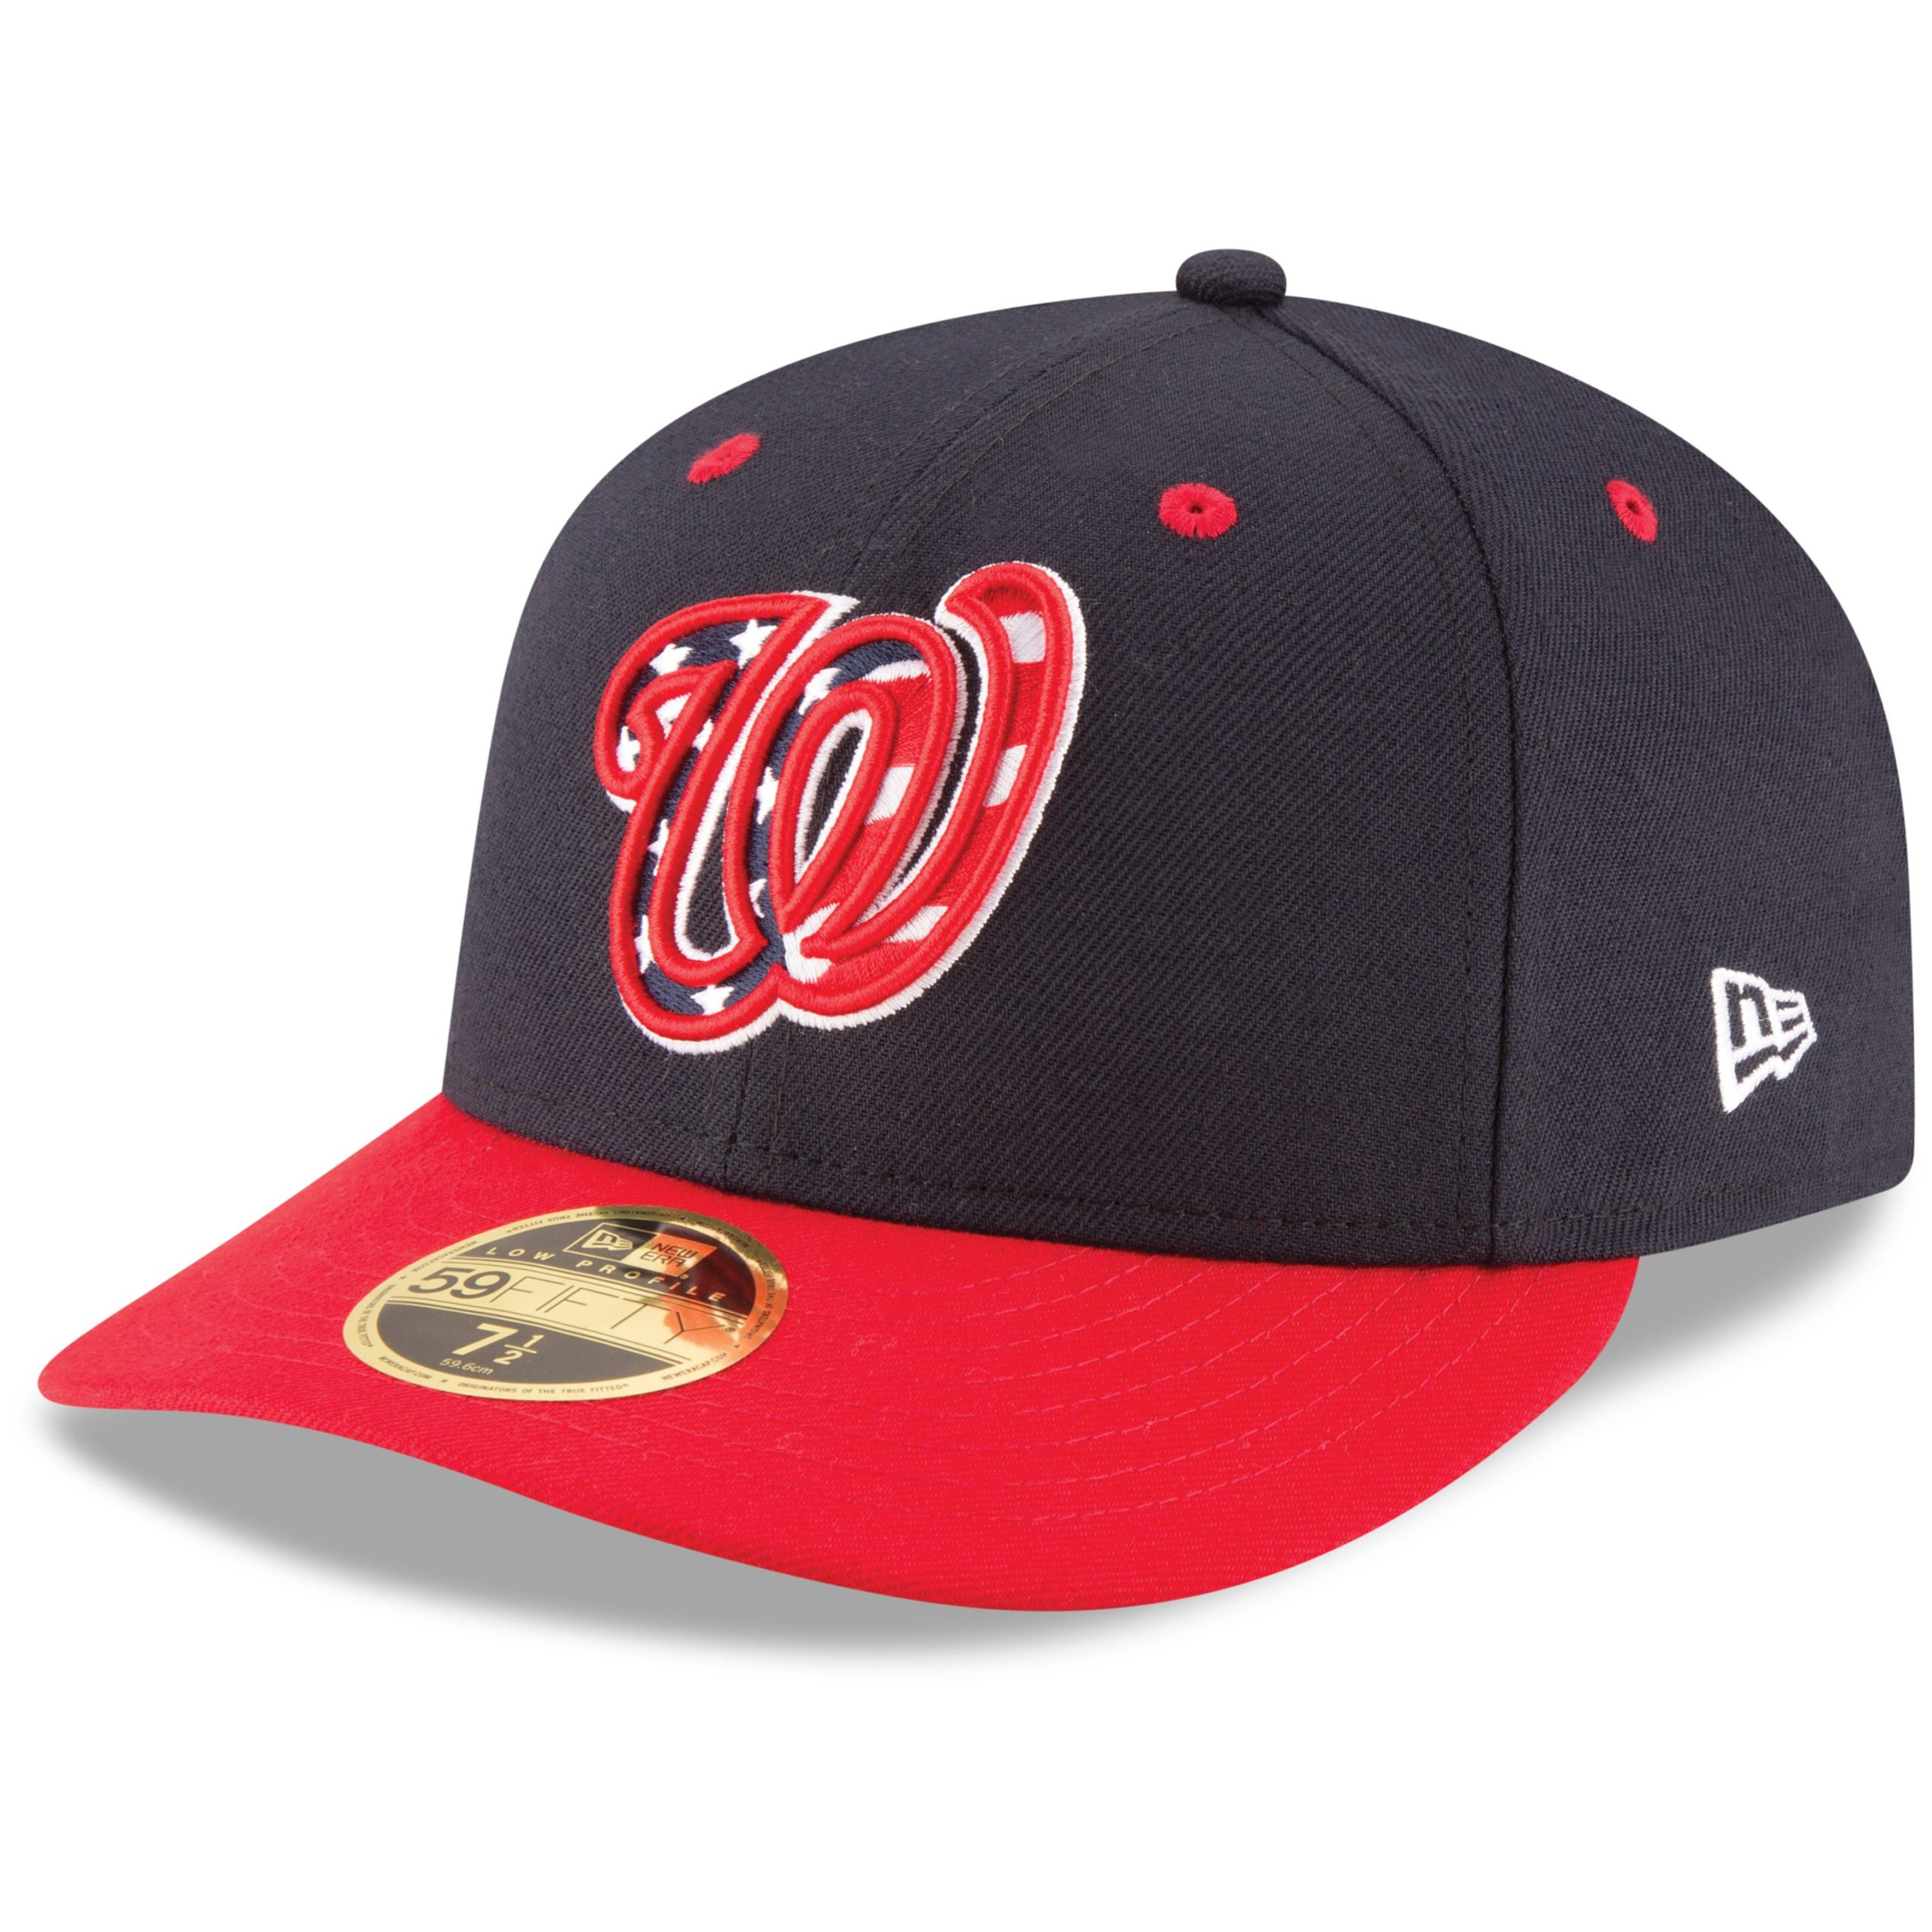 Washington Nationals New Era Alternate Authentic Collection On-Field Low Profile 59FIFTY Fitted Hat - Navy/Red